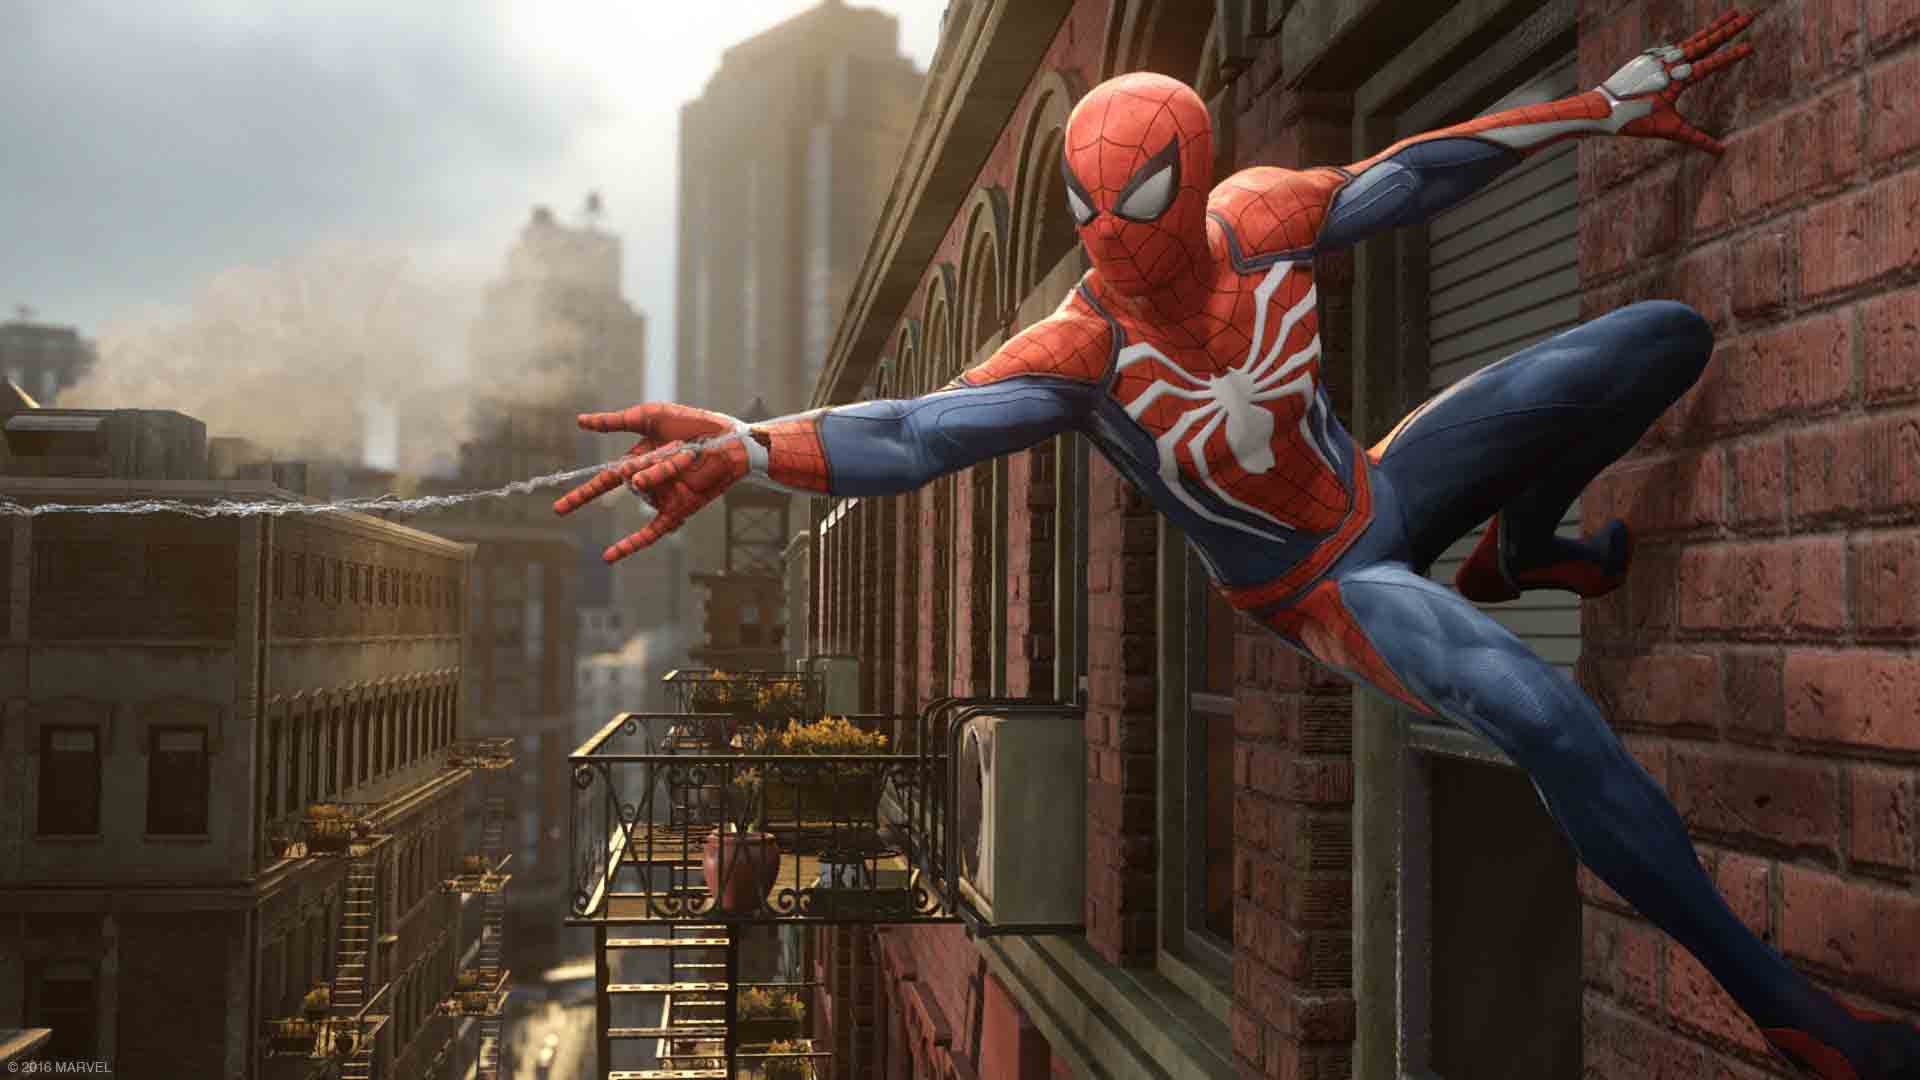 Marvel Games to Tell Original Stories, Focus on Quality